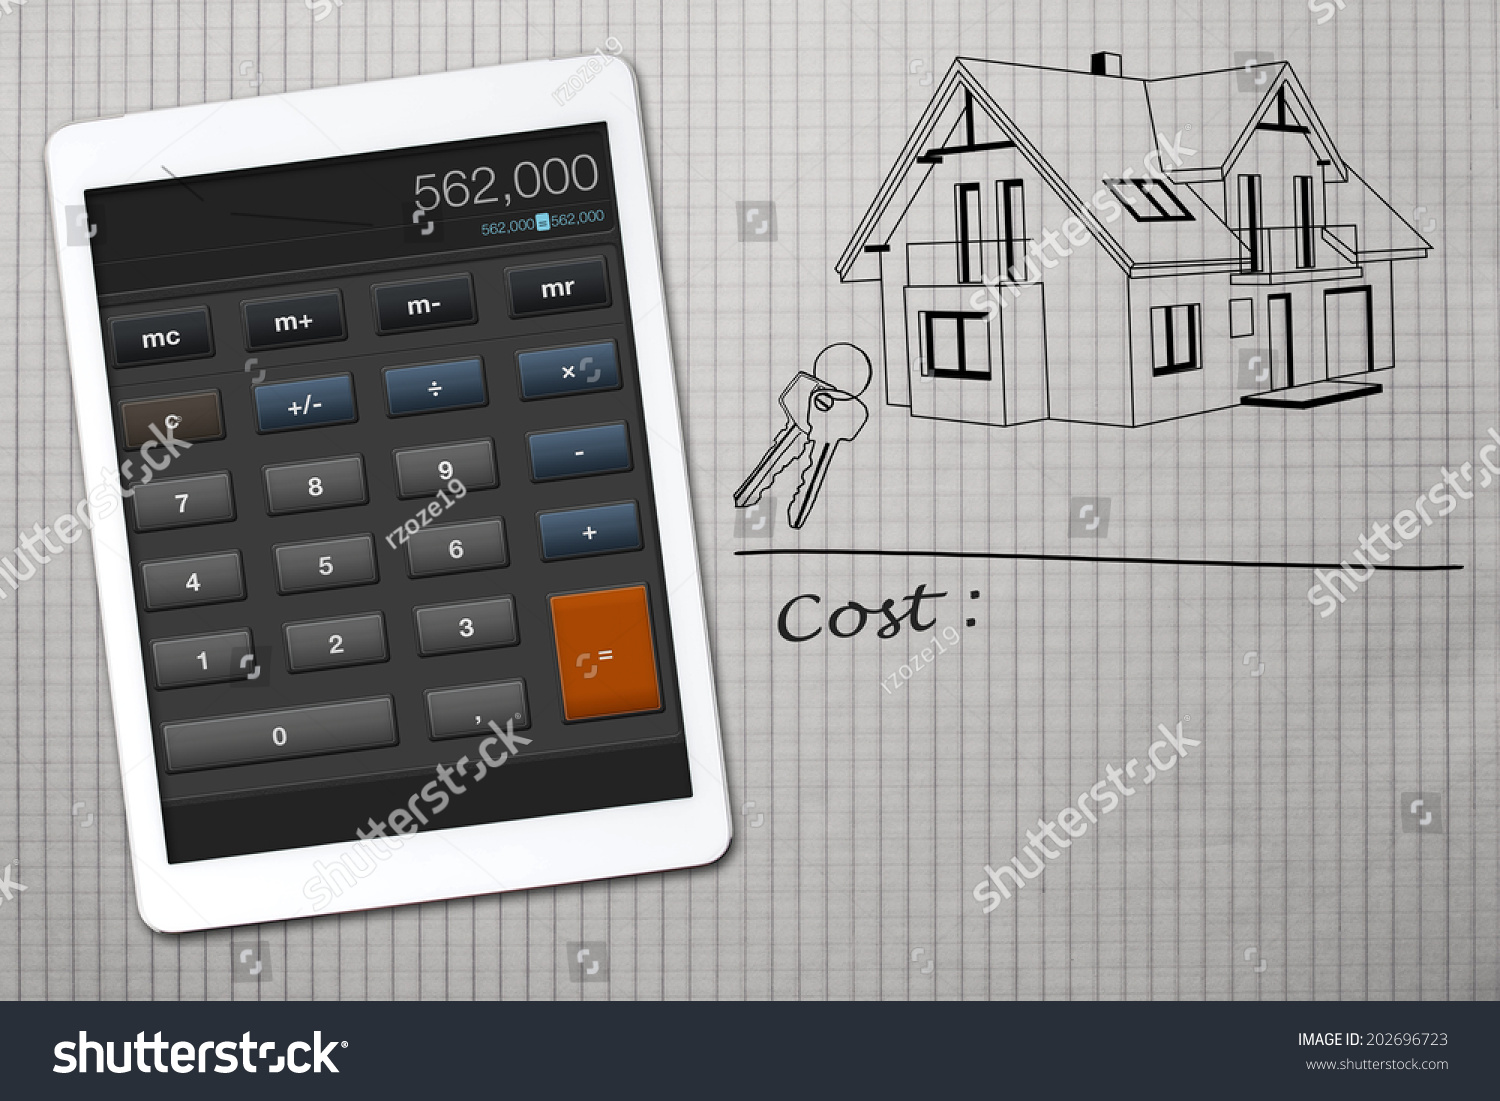 Home construction cost calculator stock photo 202696723 for Home building estimate calculator